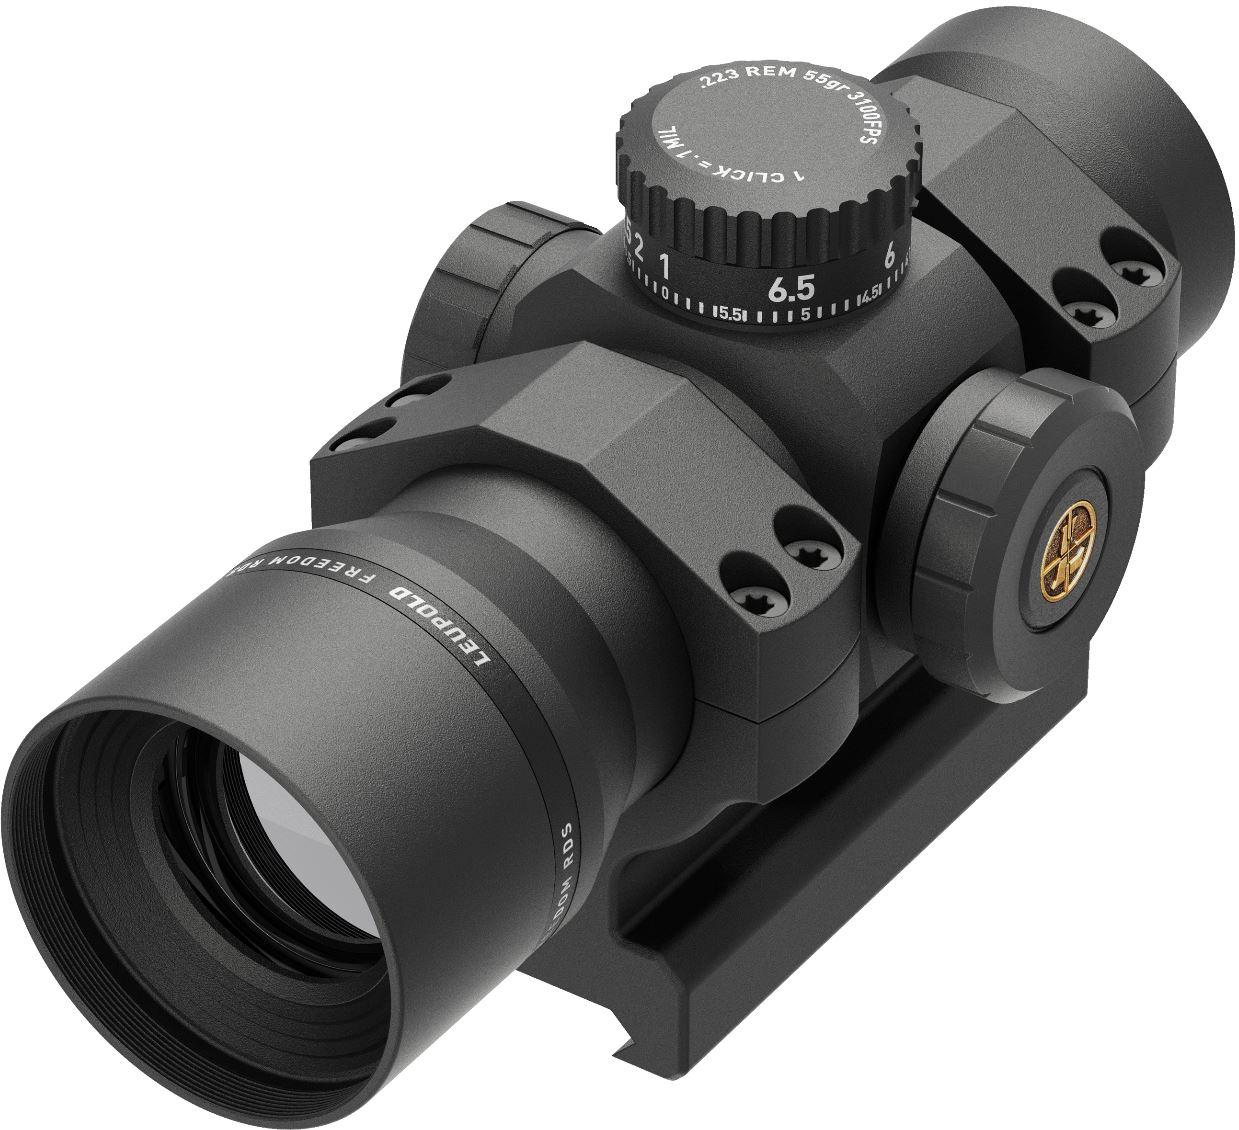 Leupold Announces New Black Ring Version of Freedom Red Dot Sight (RDS)